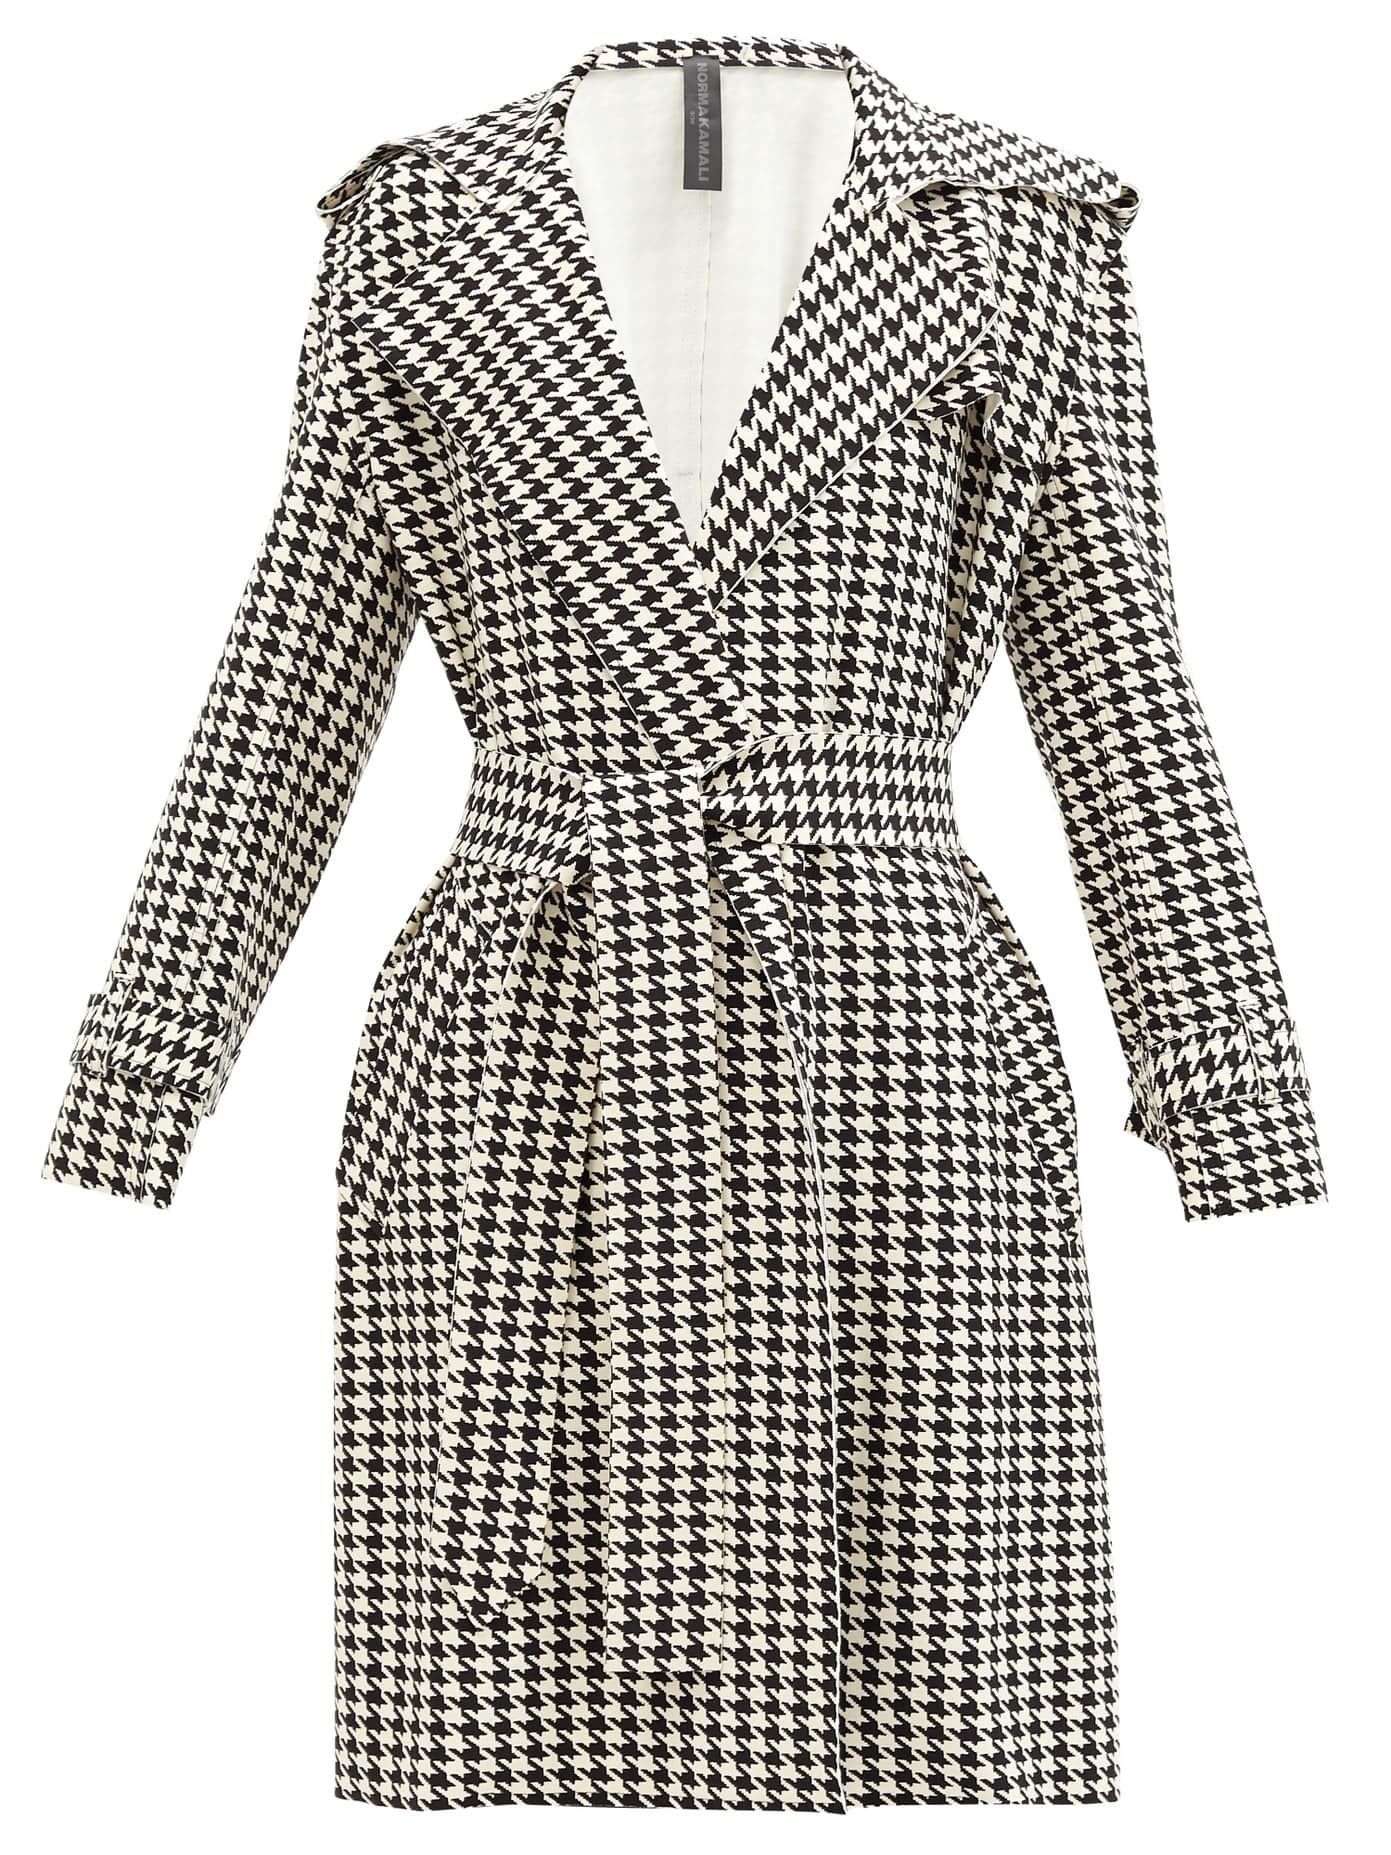 Power Outerwear...Cool Coats for Cool Days, print coats, Norma Kamali houndstooth print belted trench coat-min